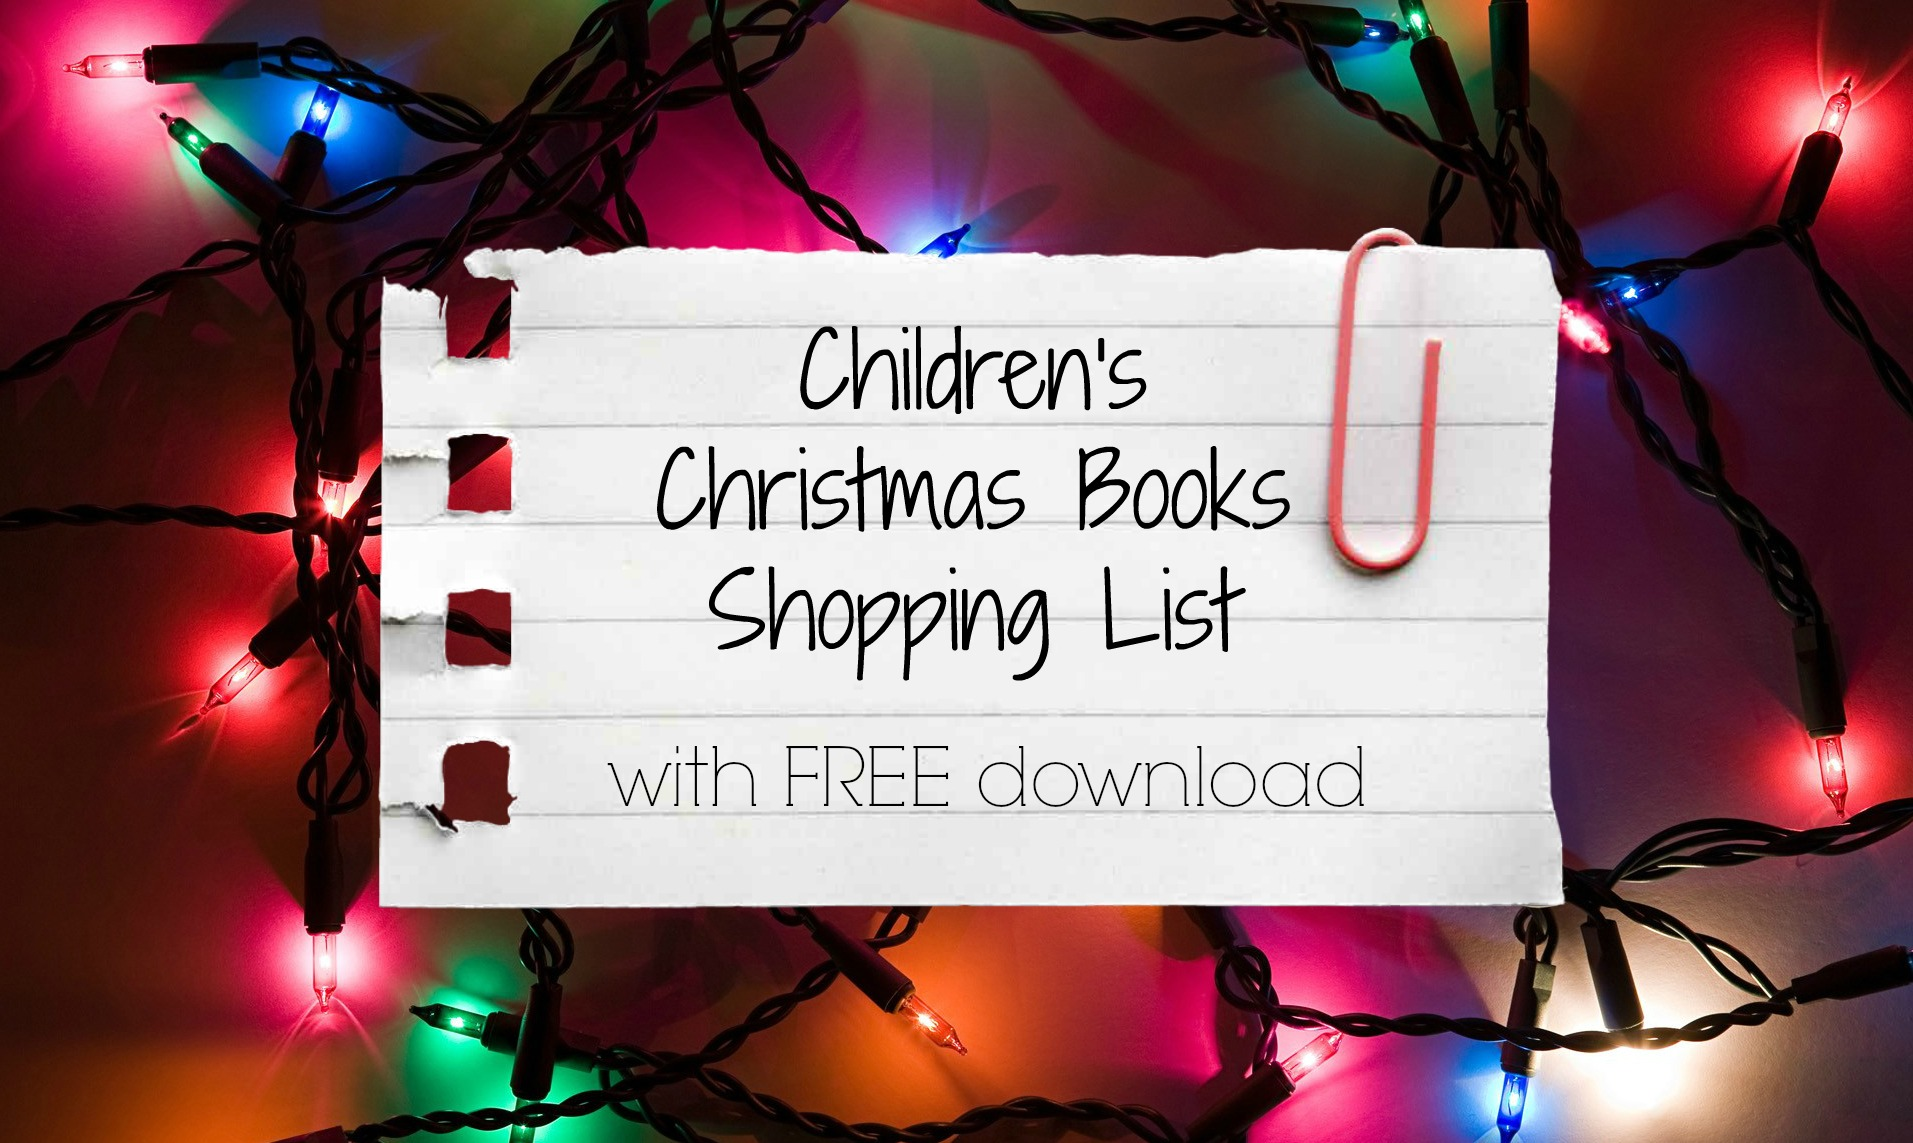 Children's Christmas Books Shopping List (with FREE Download)